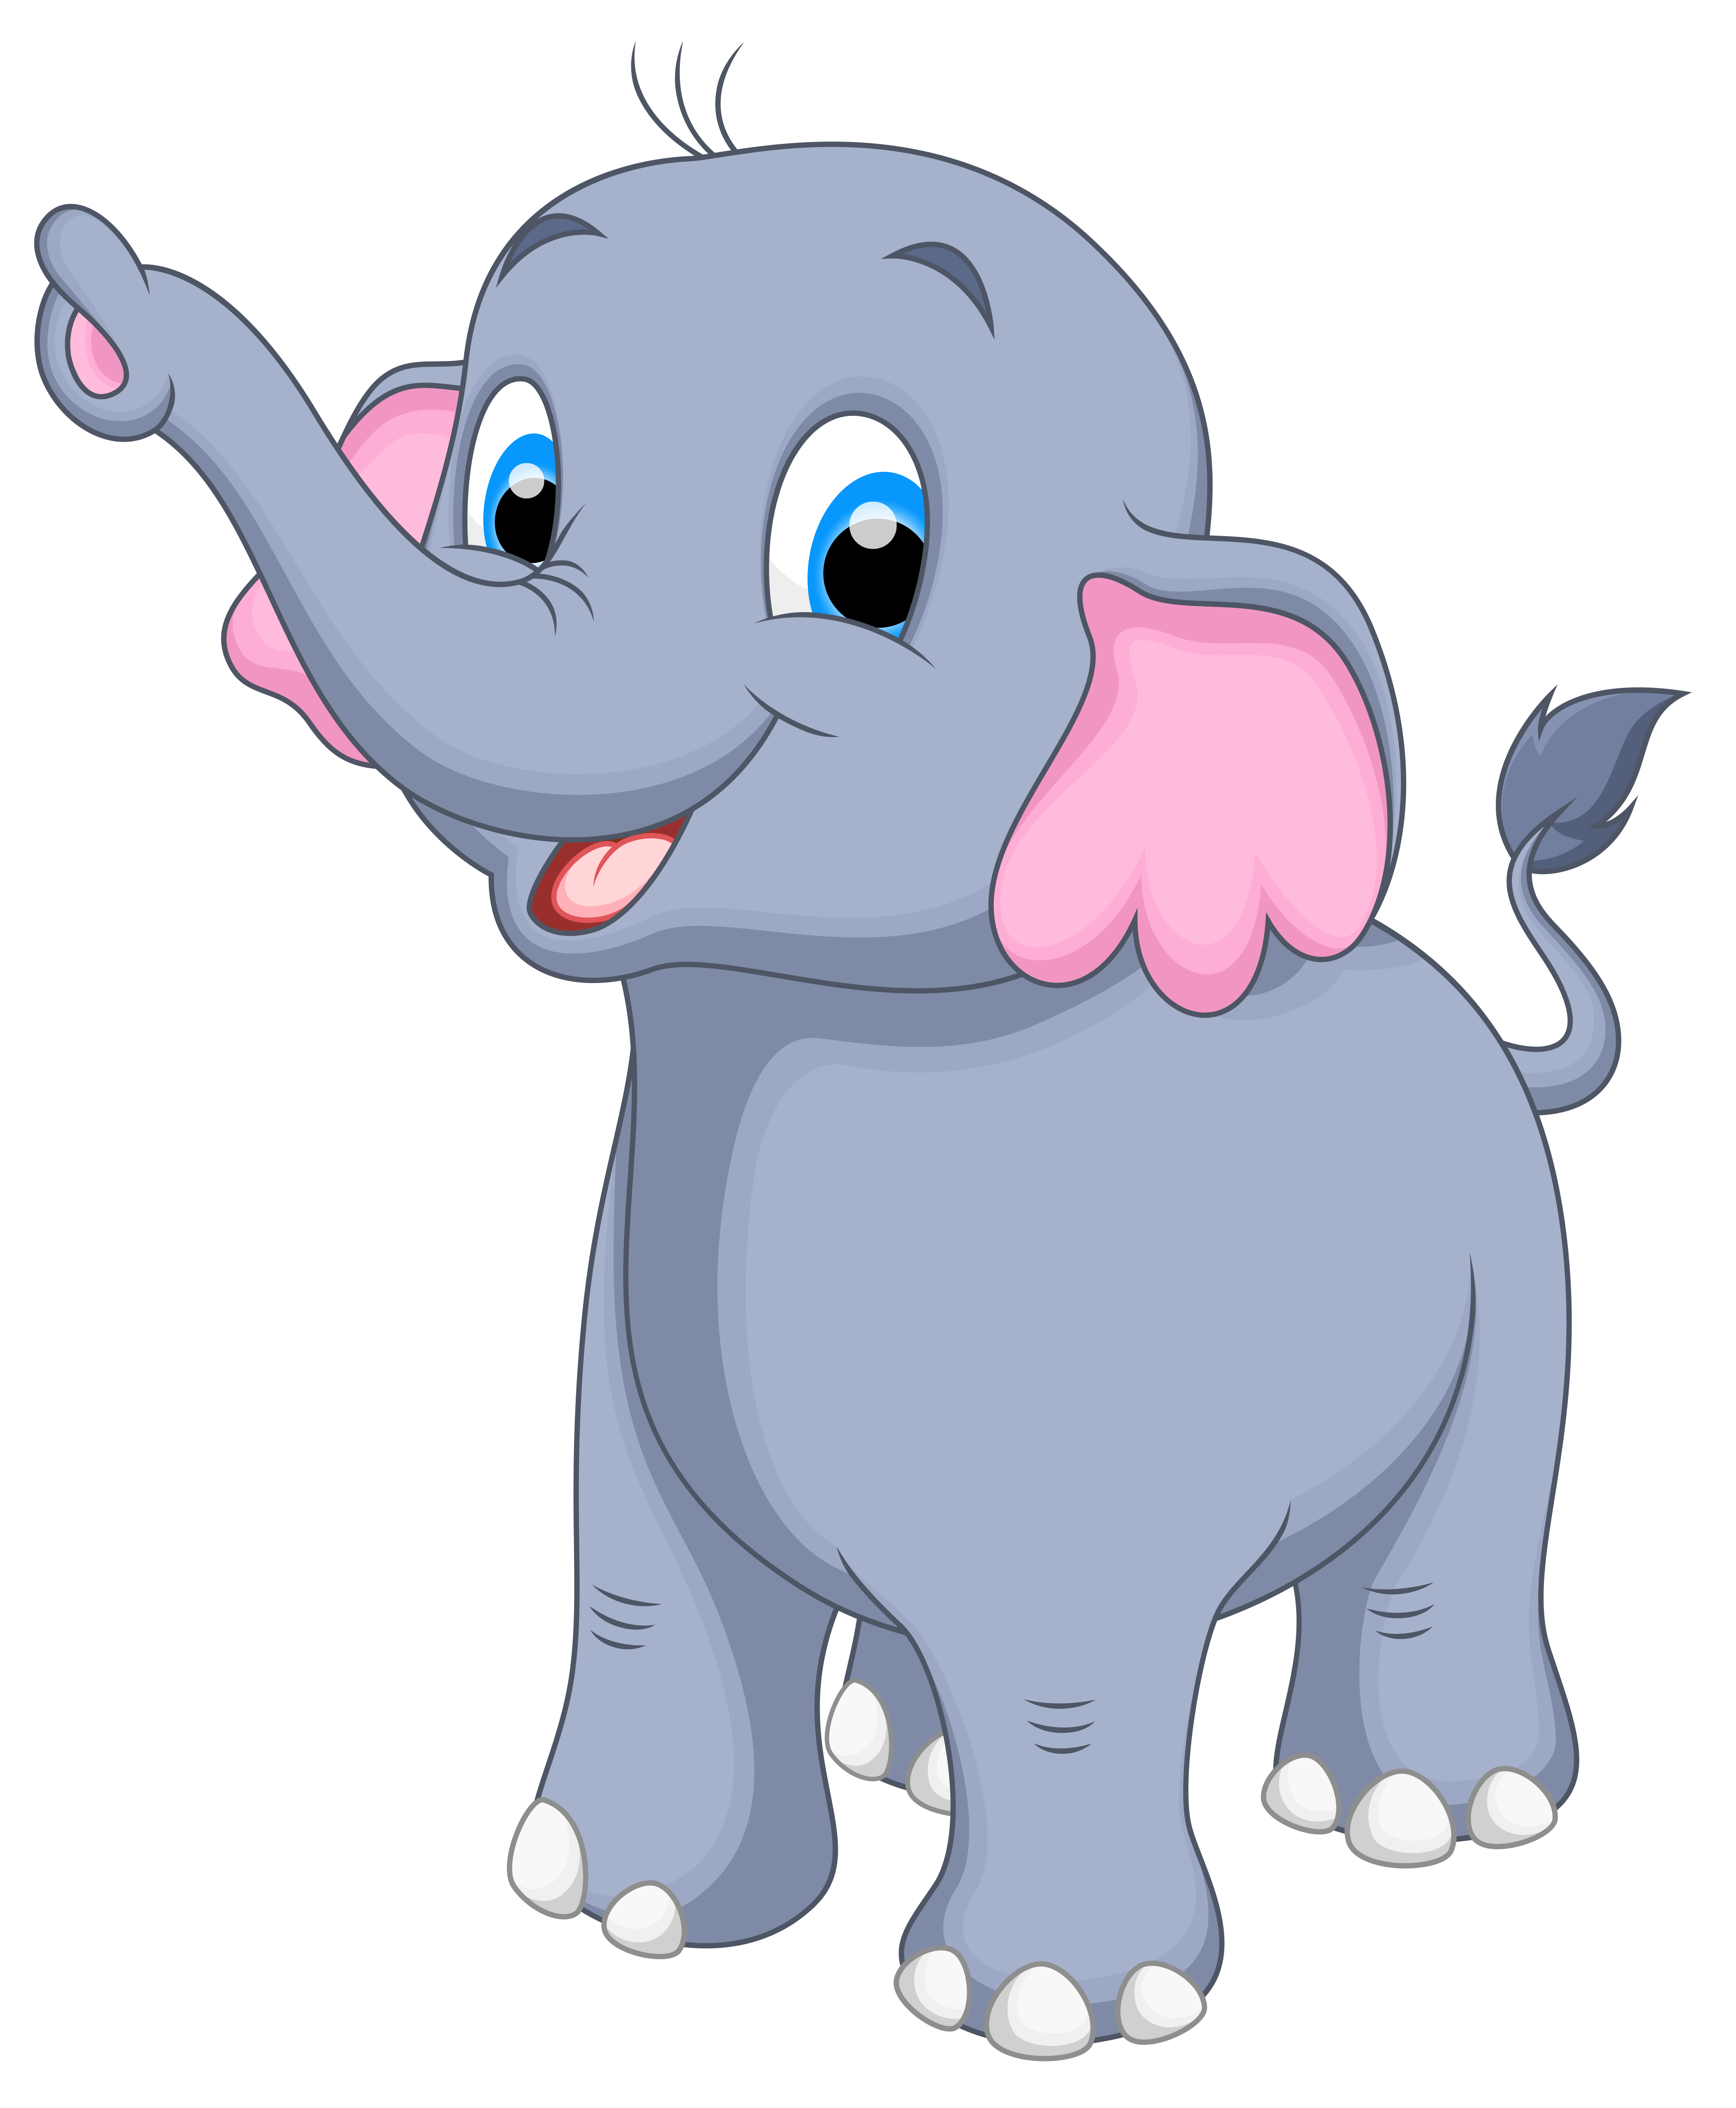 Little png clipart image. Elephant clip art clip royalty free stock